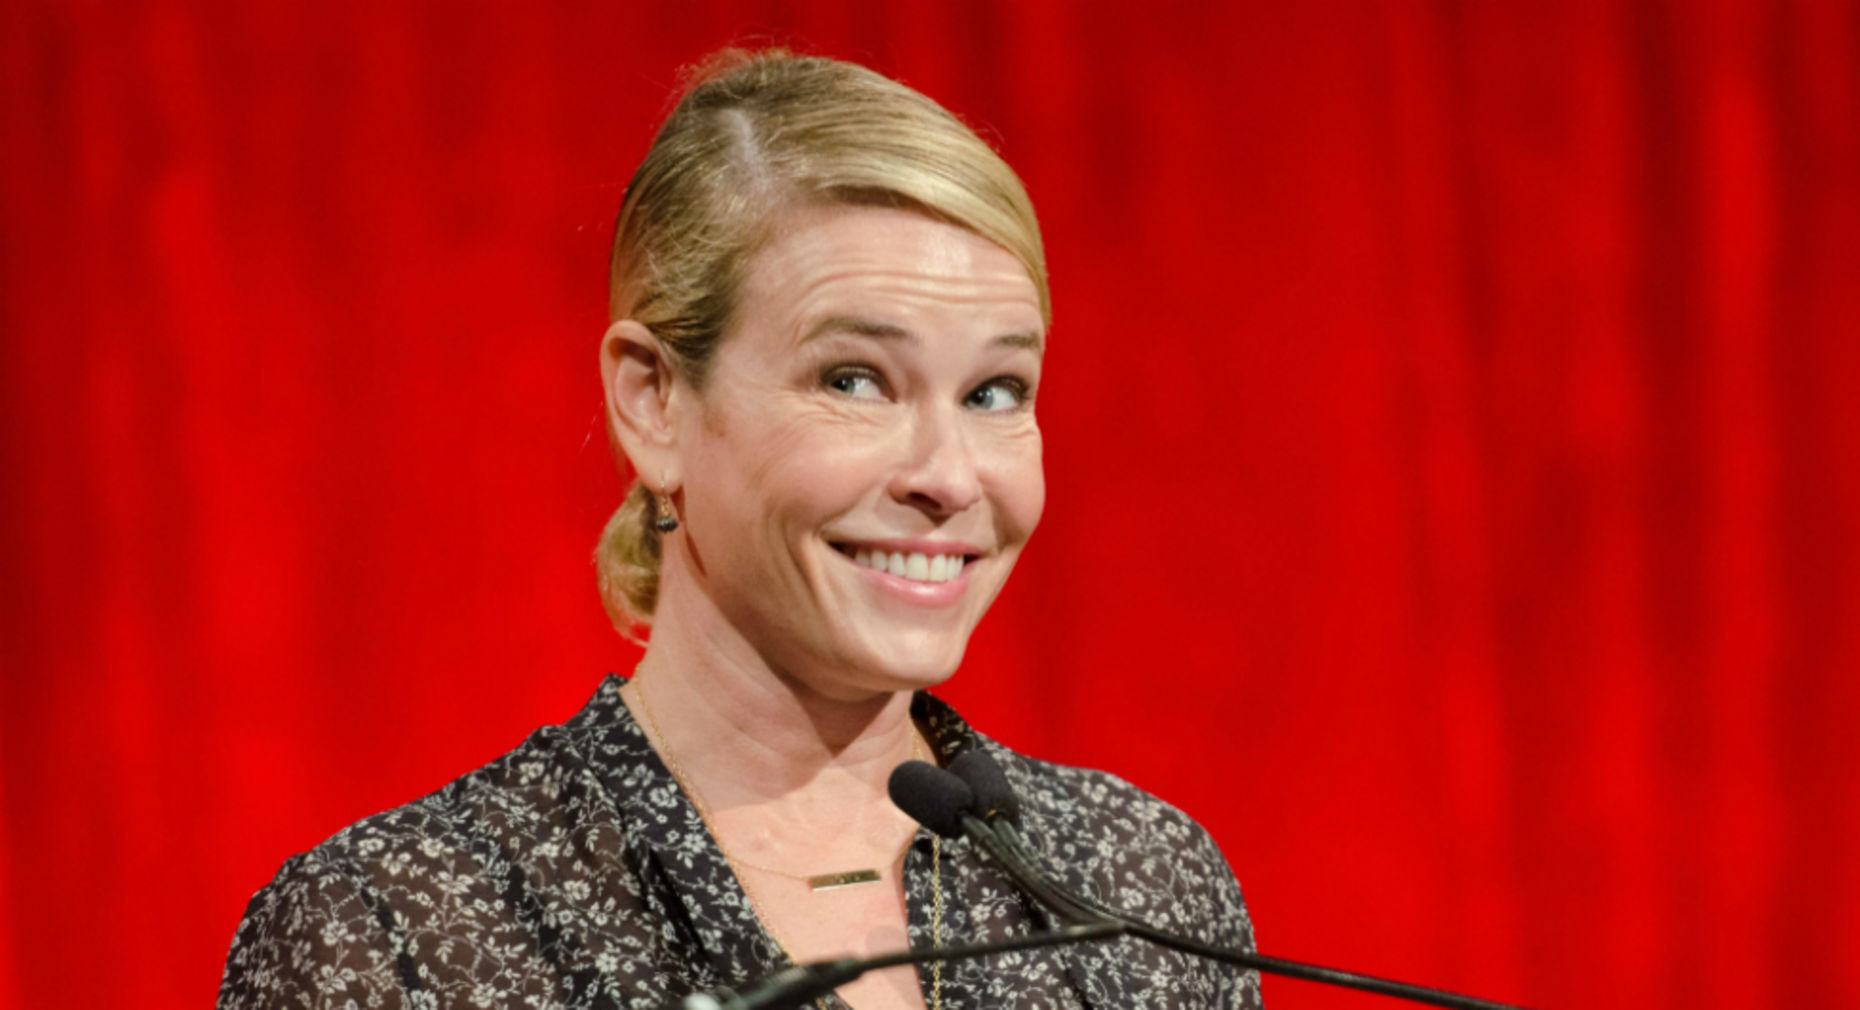 Chelsea Handler. Photo by Associated Press.